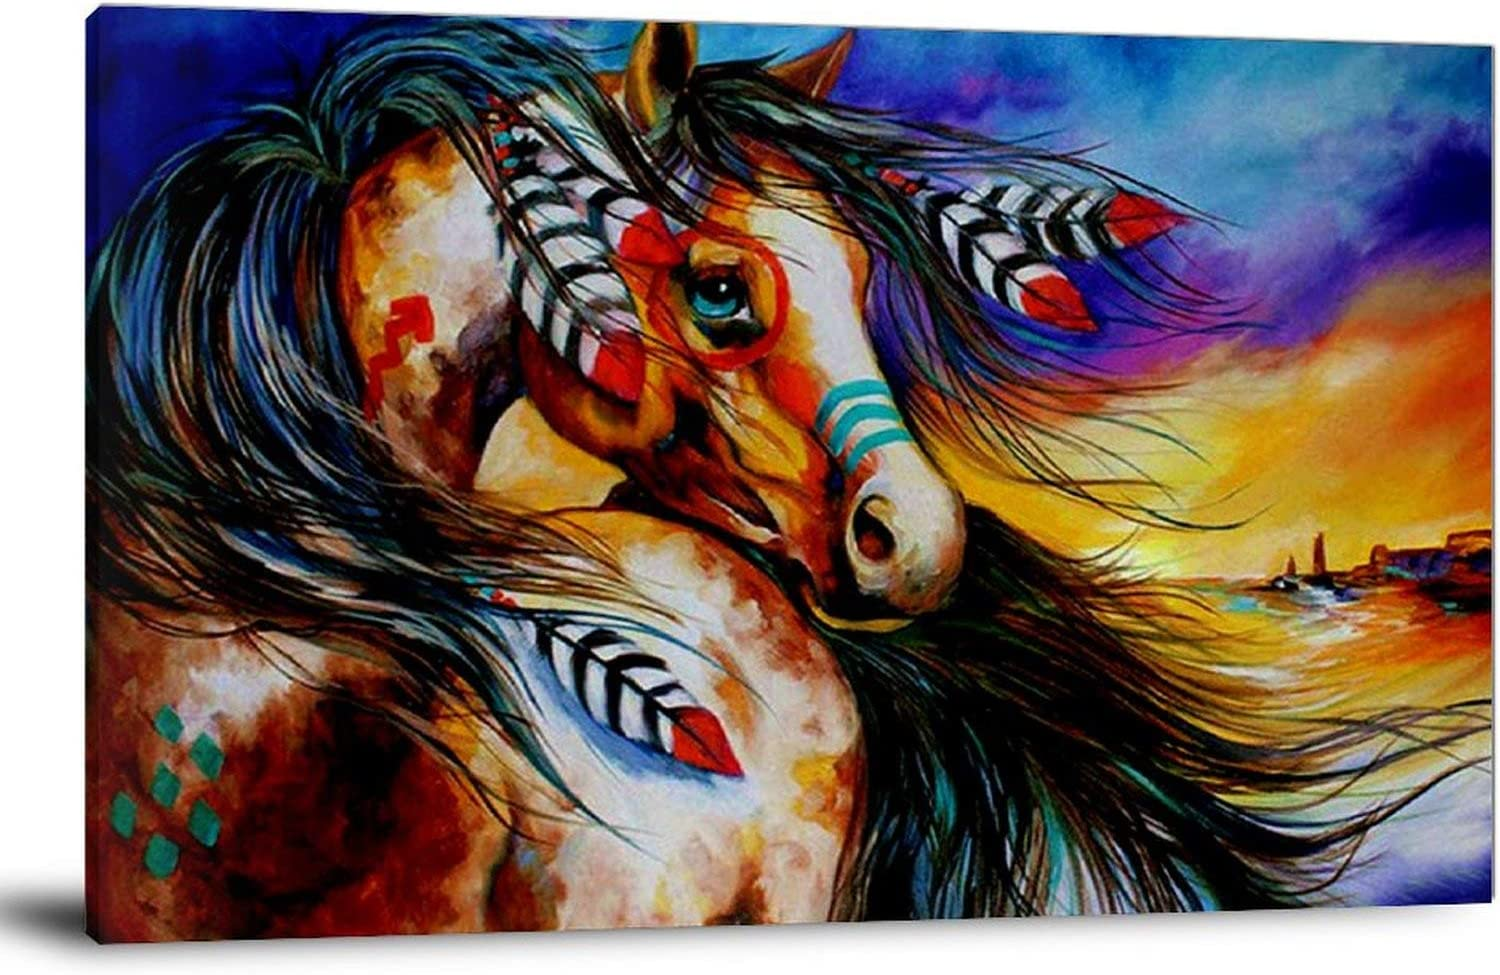 YPMY Horse Painting Native American 購買 Indian Vin Art Culture お買い得品